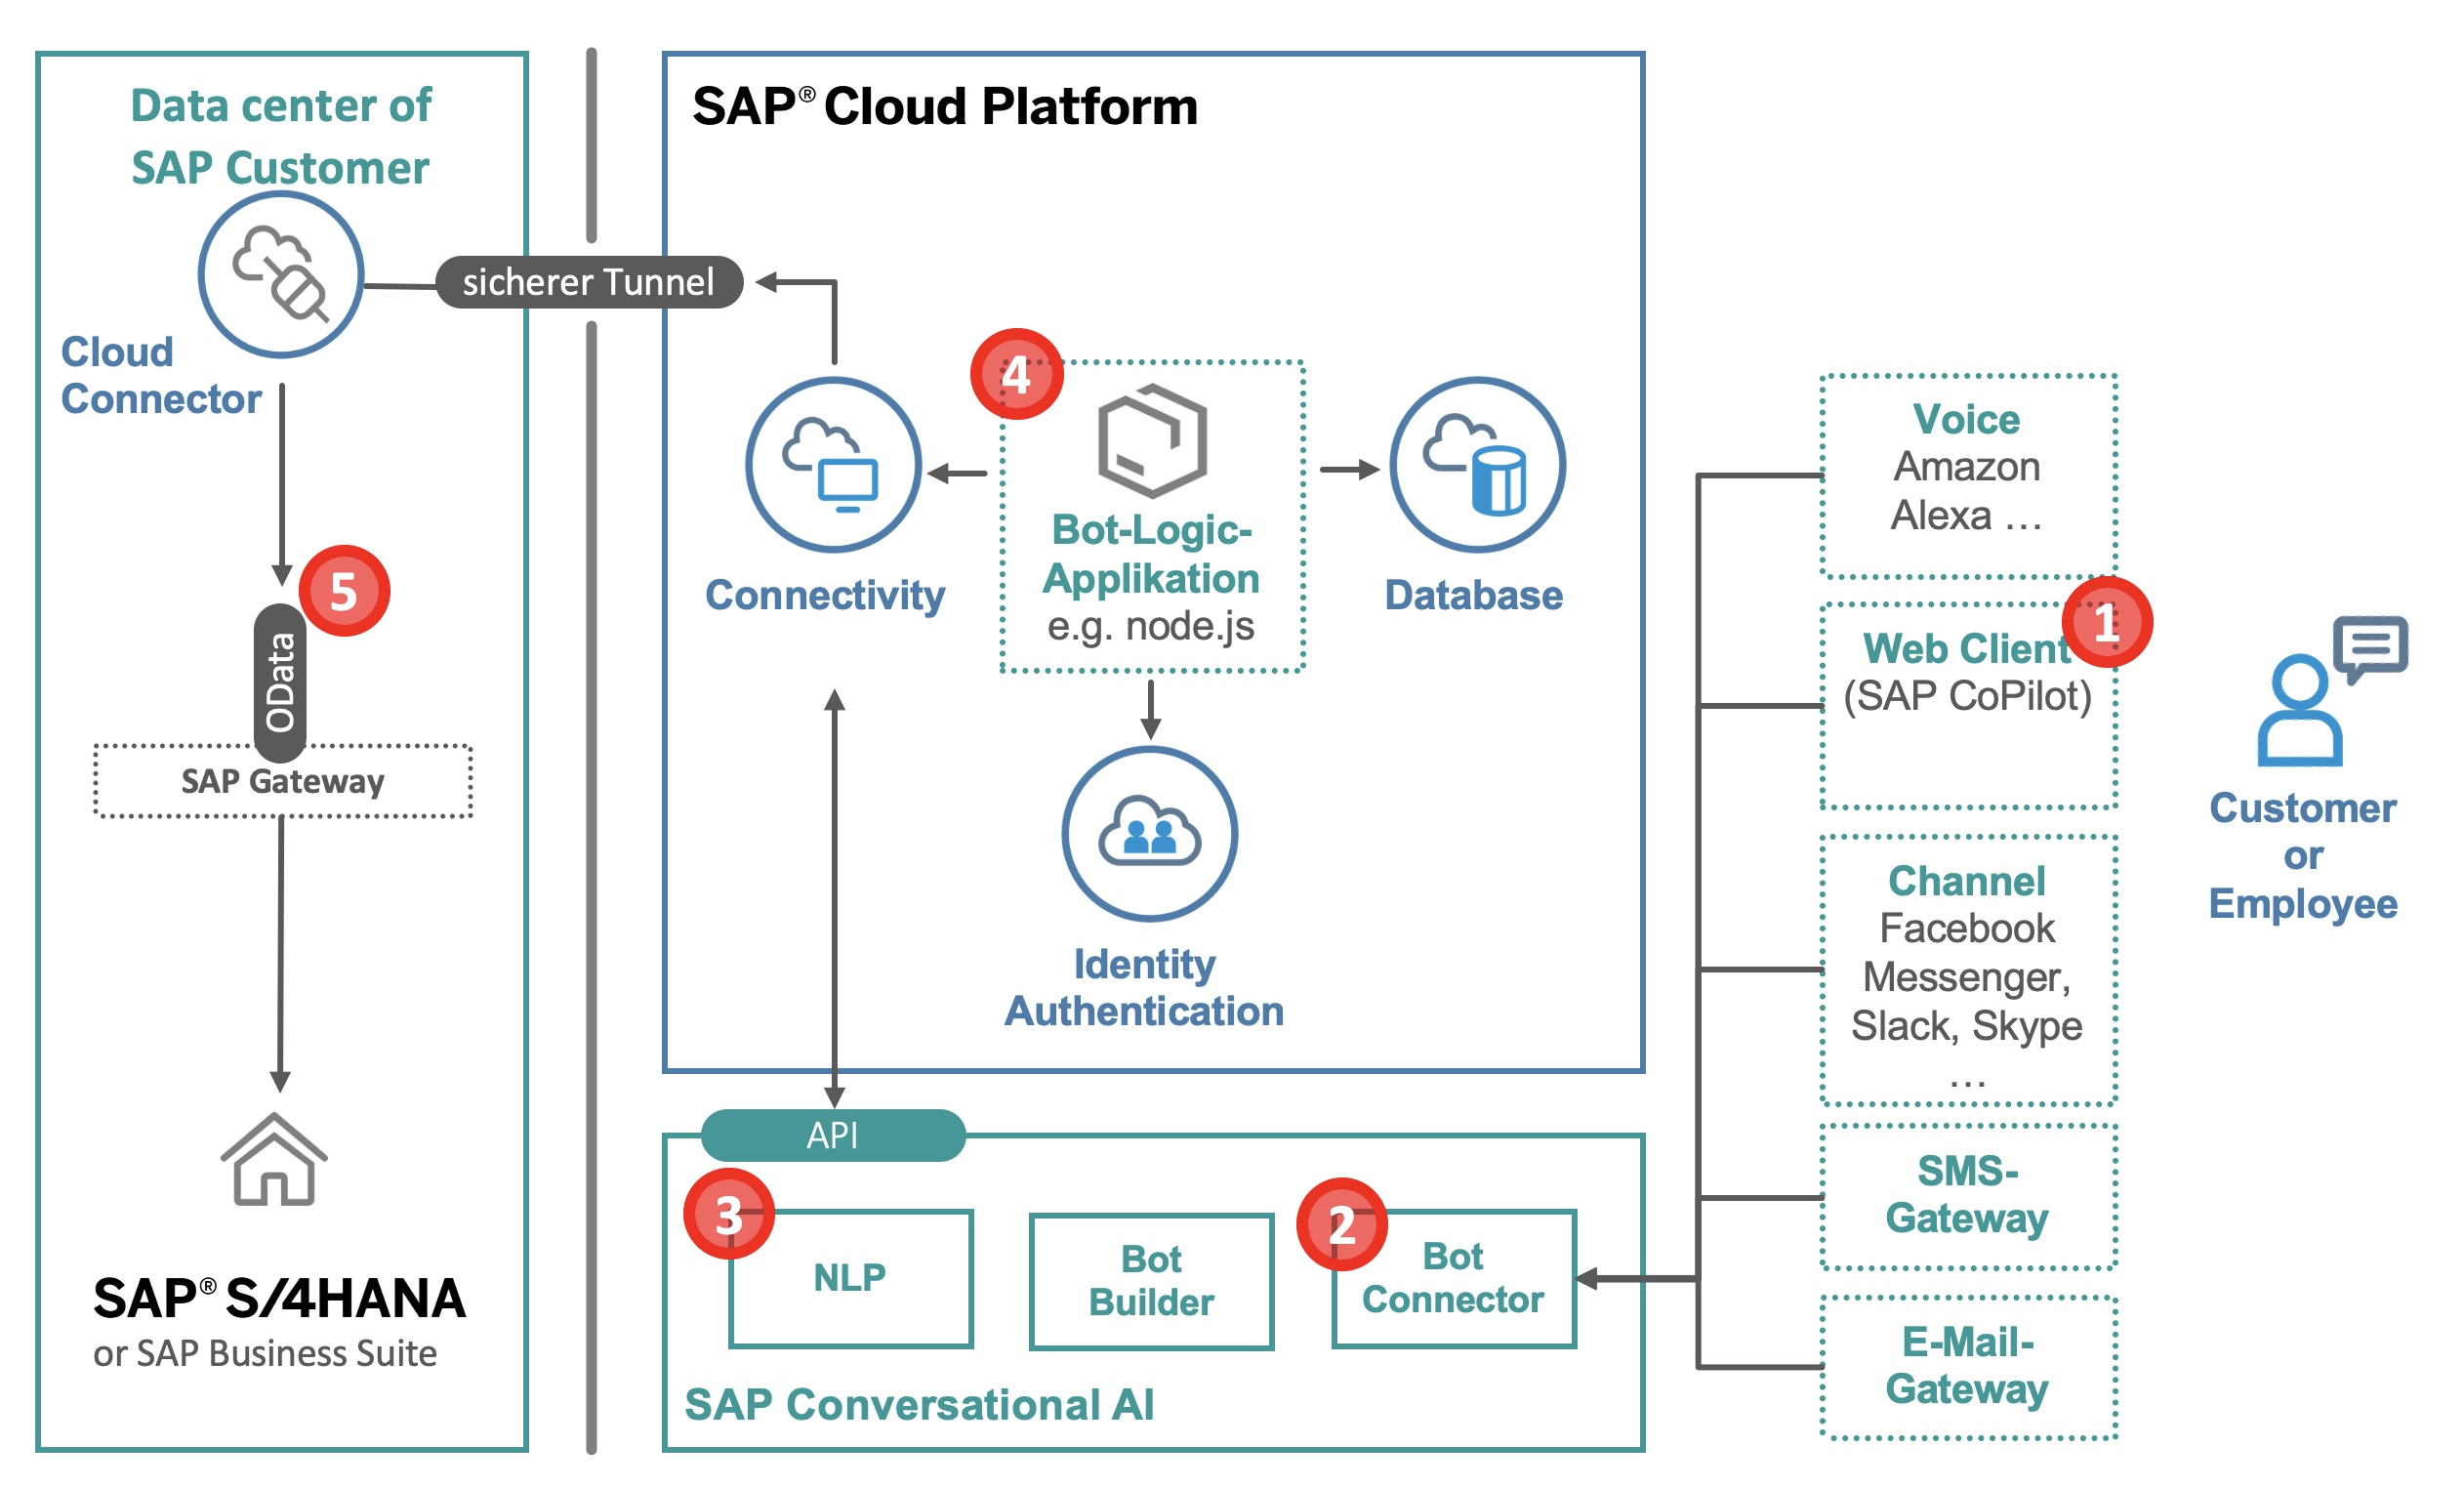 Architecture%20of%20SAP%20Conversational%20AI